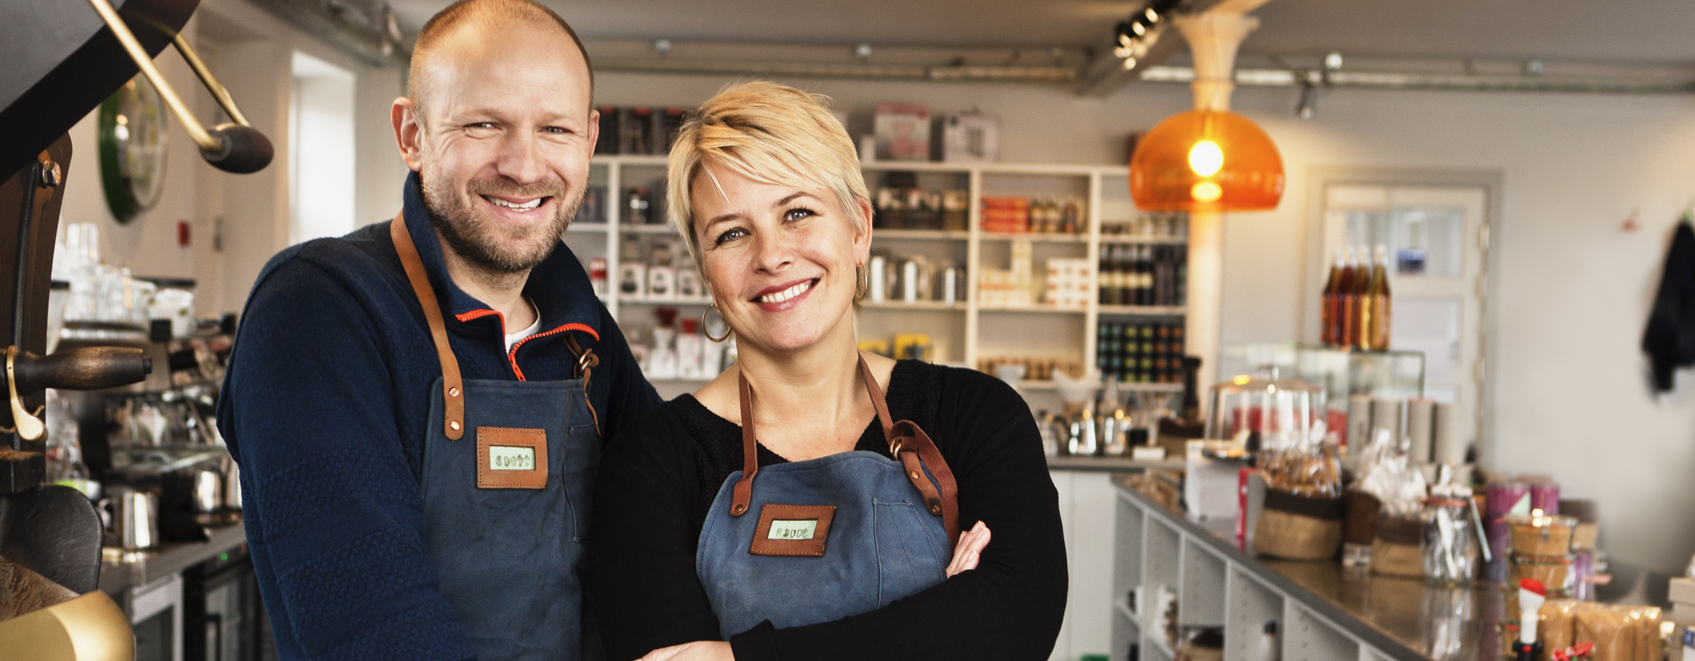 Owners stand smiling in their small business